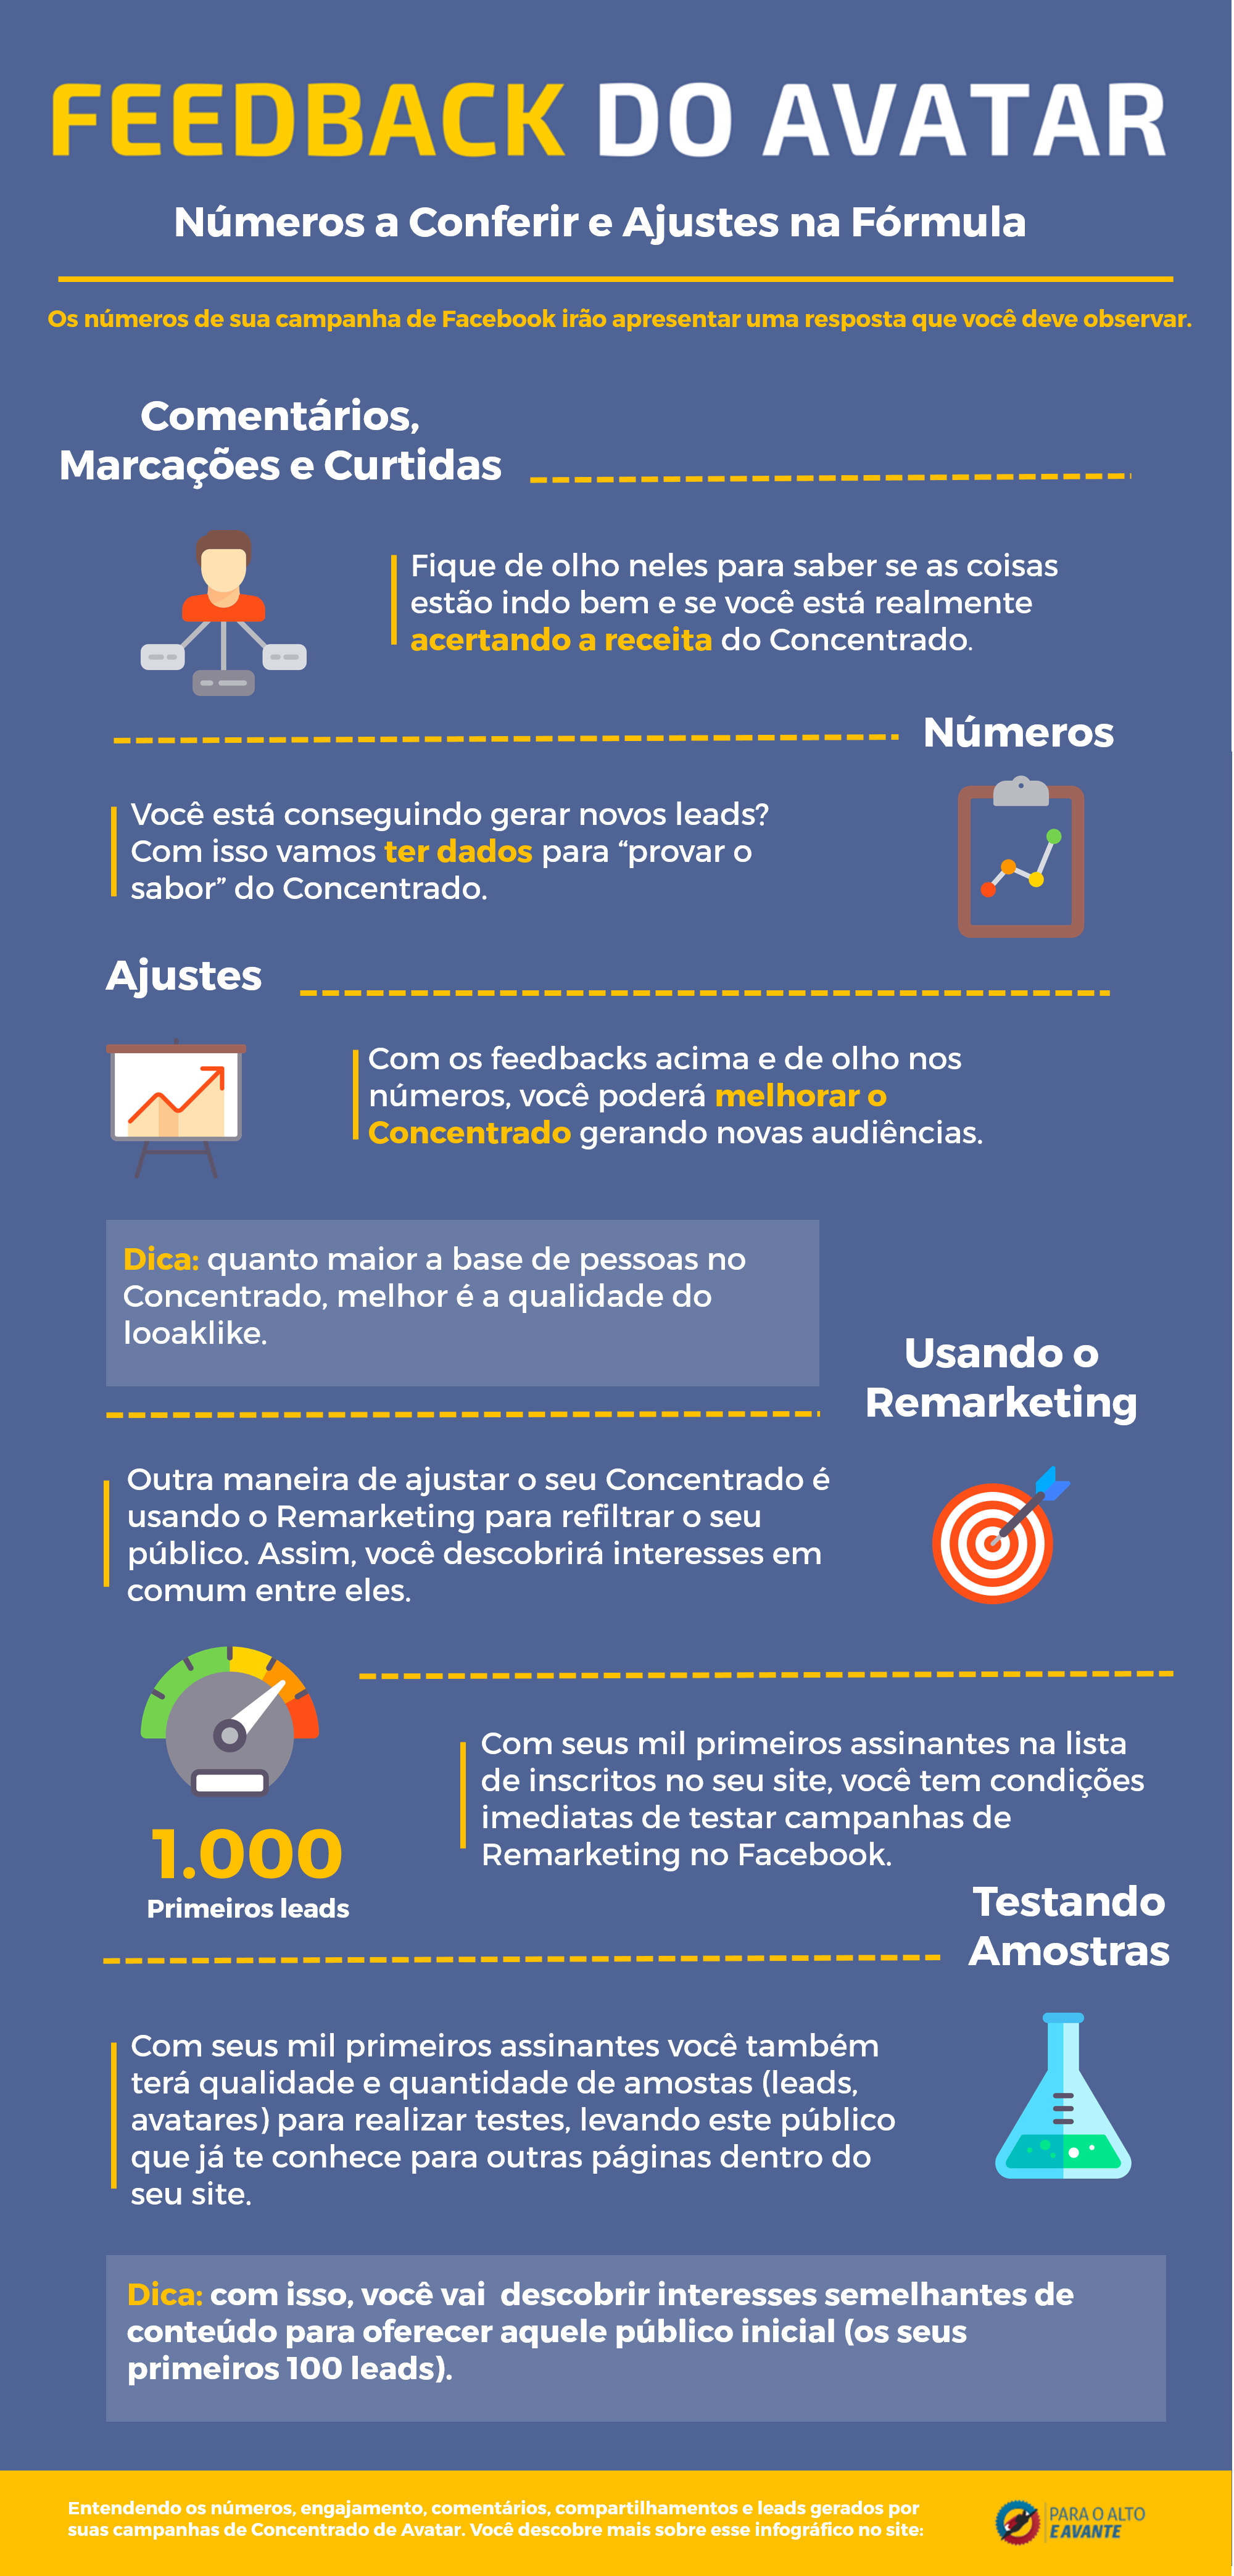 ofical infografico - feedback do avatar